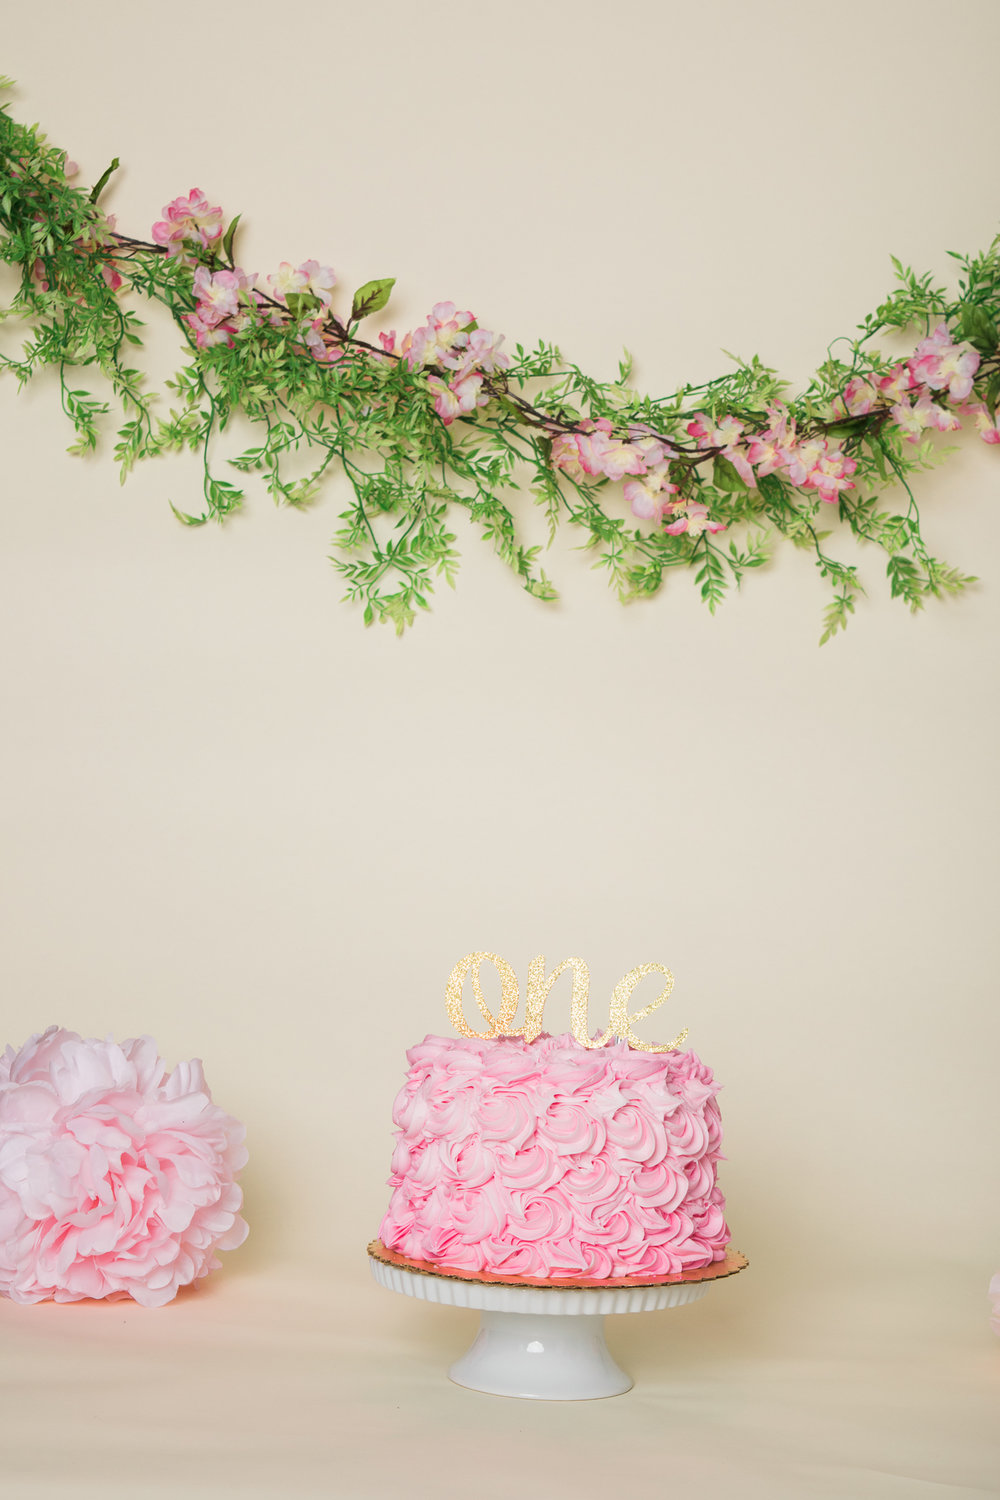 Celebrate! - Your babe is a year old! Celebrate with an adorably messy cake smash session. This on location session lasts 30 minutes with just enough time to dig in. I will provide a consultation for outfit and cake choice. Backdrop, props and decor are included.